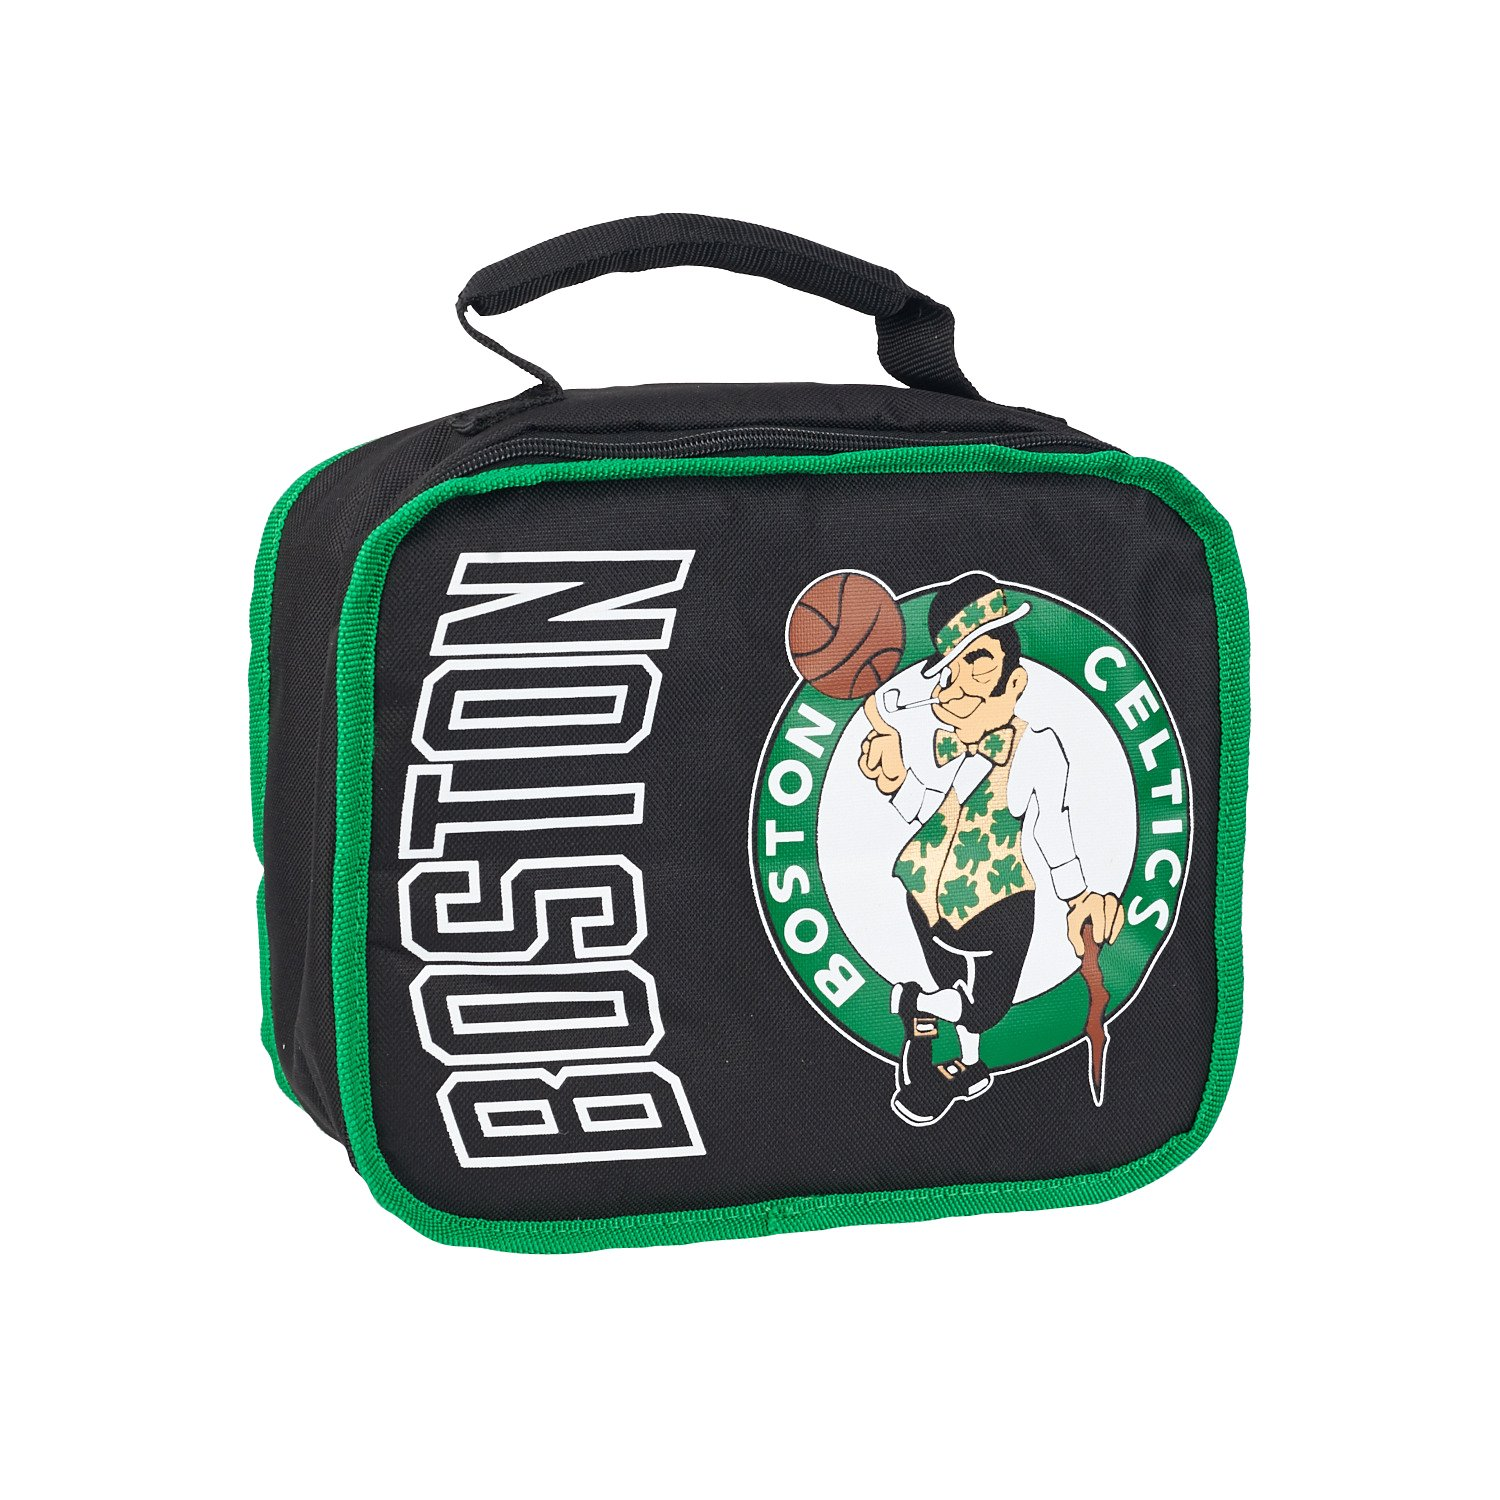 Officially Licensed NBA Boston Celtics Sacked Lunch Cooler